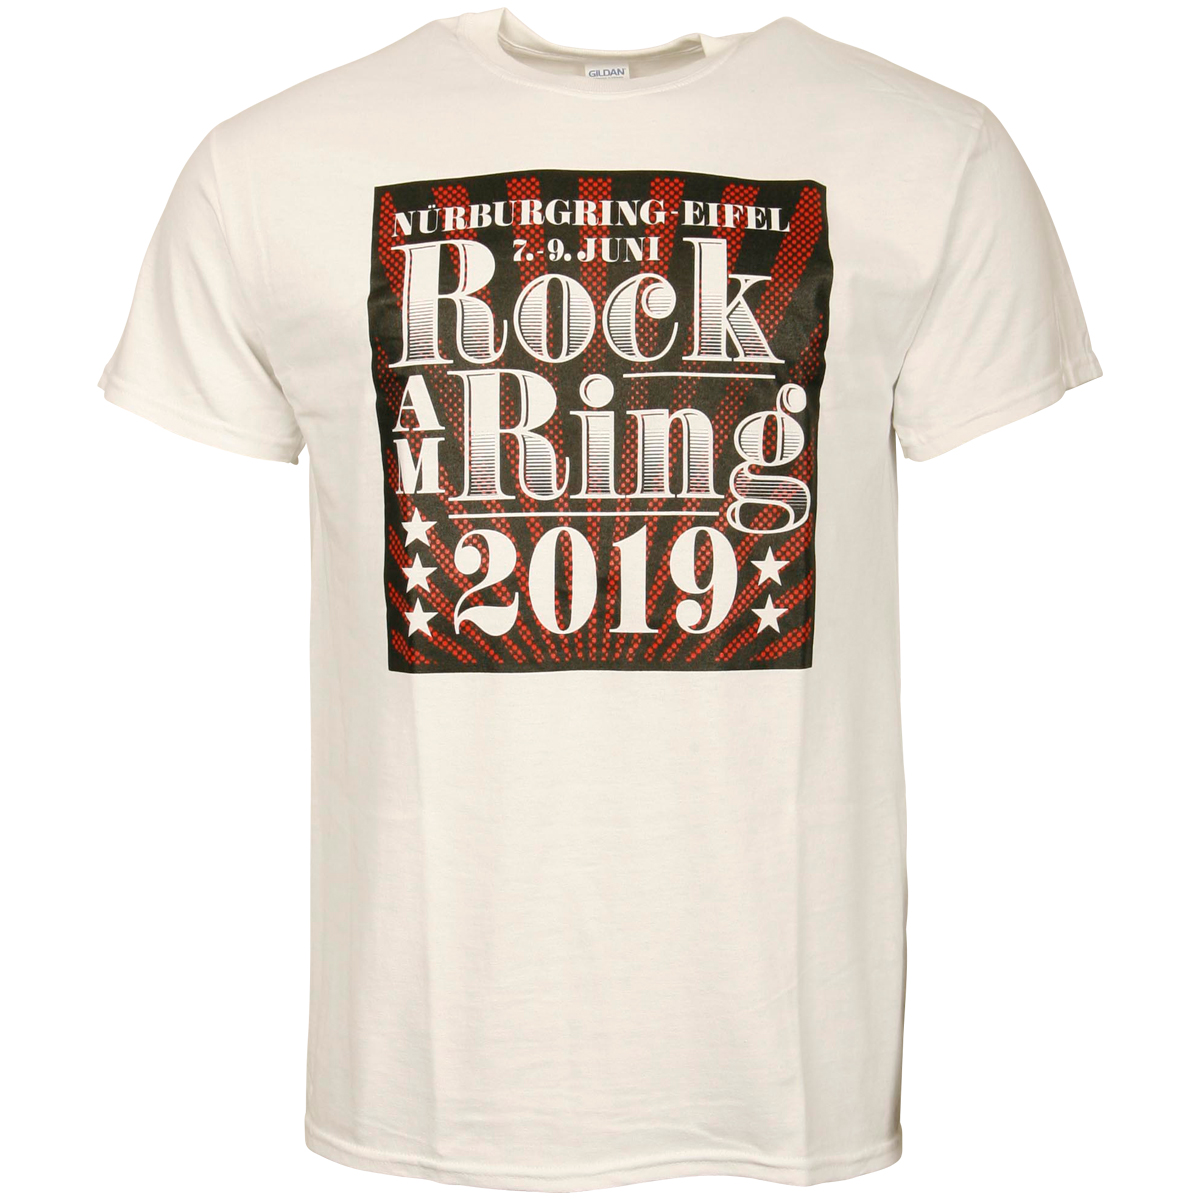 Rock am Ring 2019 -T-Shirt Classic Typo White - weiß